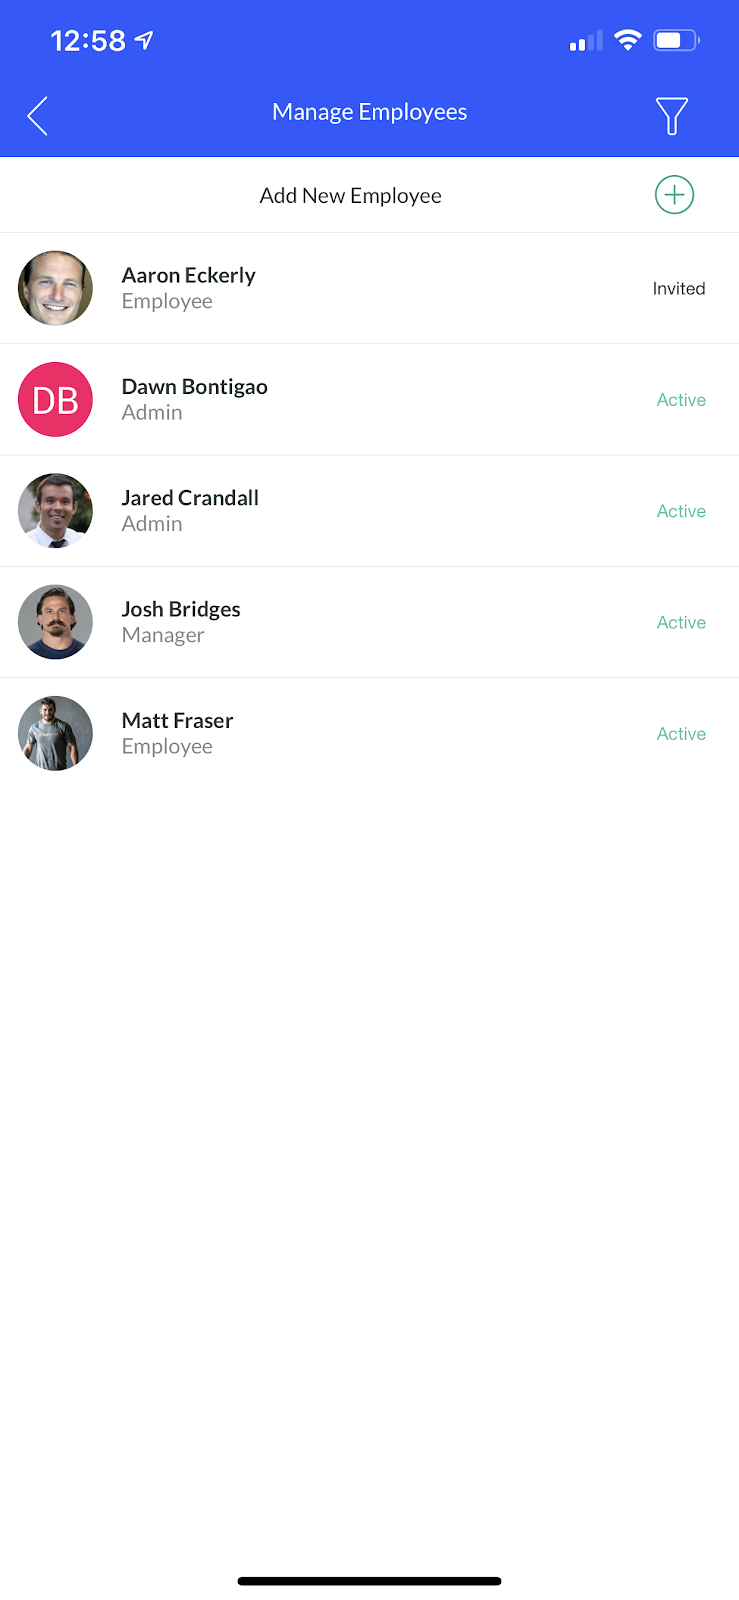 Screenshot showing how to add a new employee by tapping on 'Add New Employee'